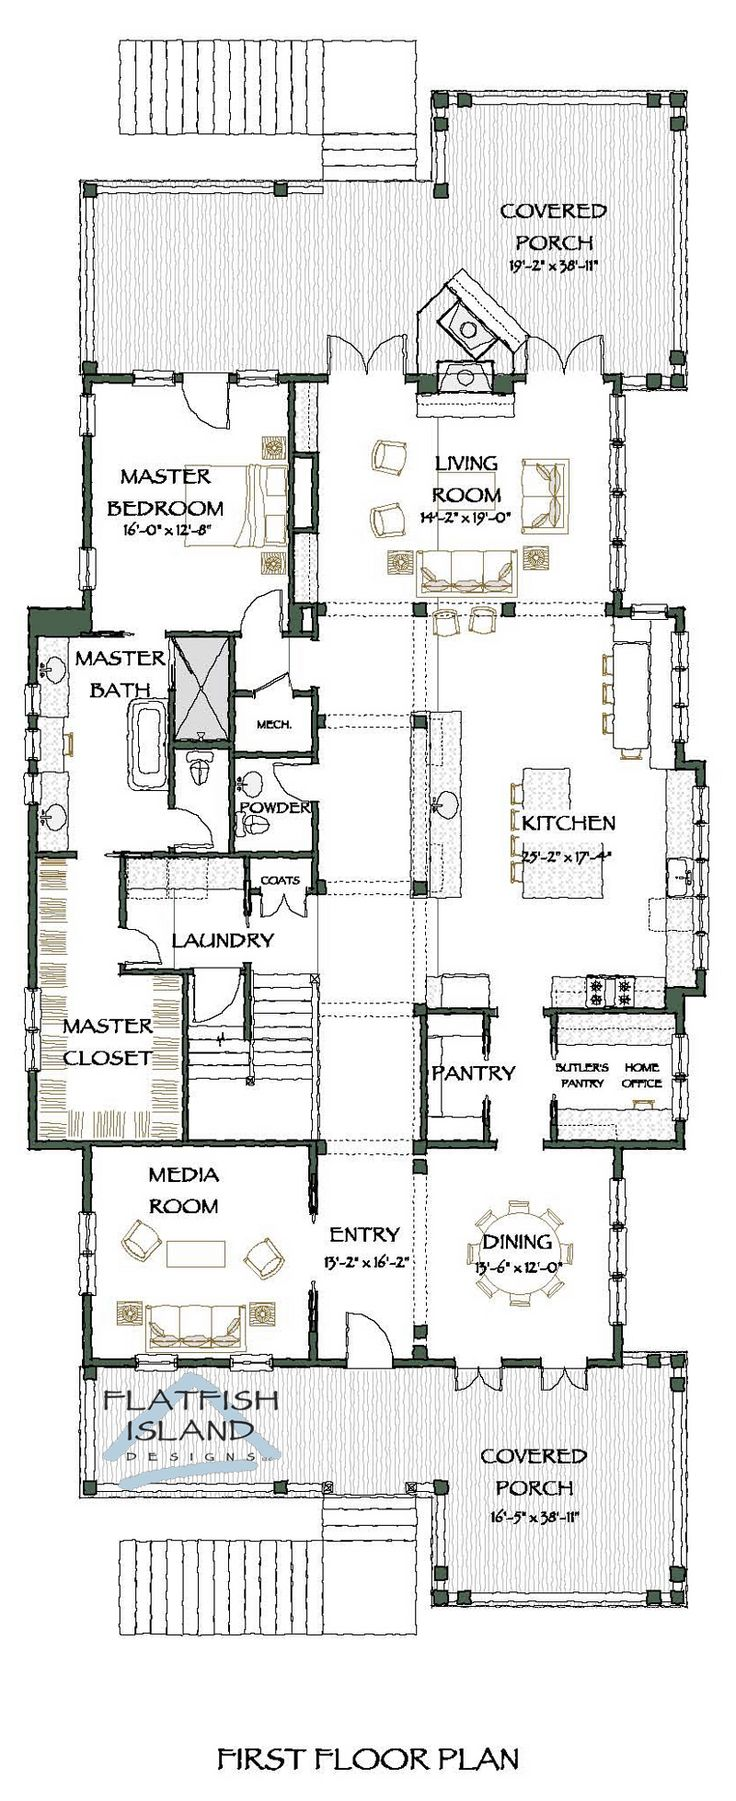 http   www flatfishislanddesigns com home plan capers. 421 best House Plans Blueprints images on Pinterest   Dream house